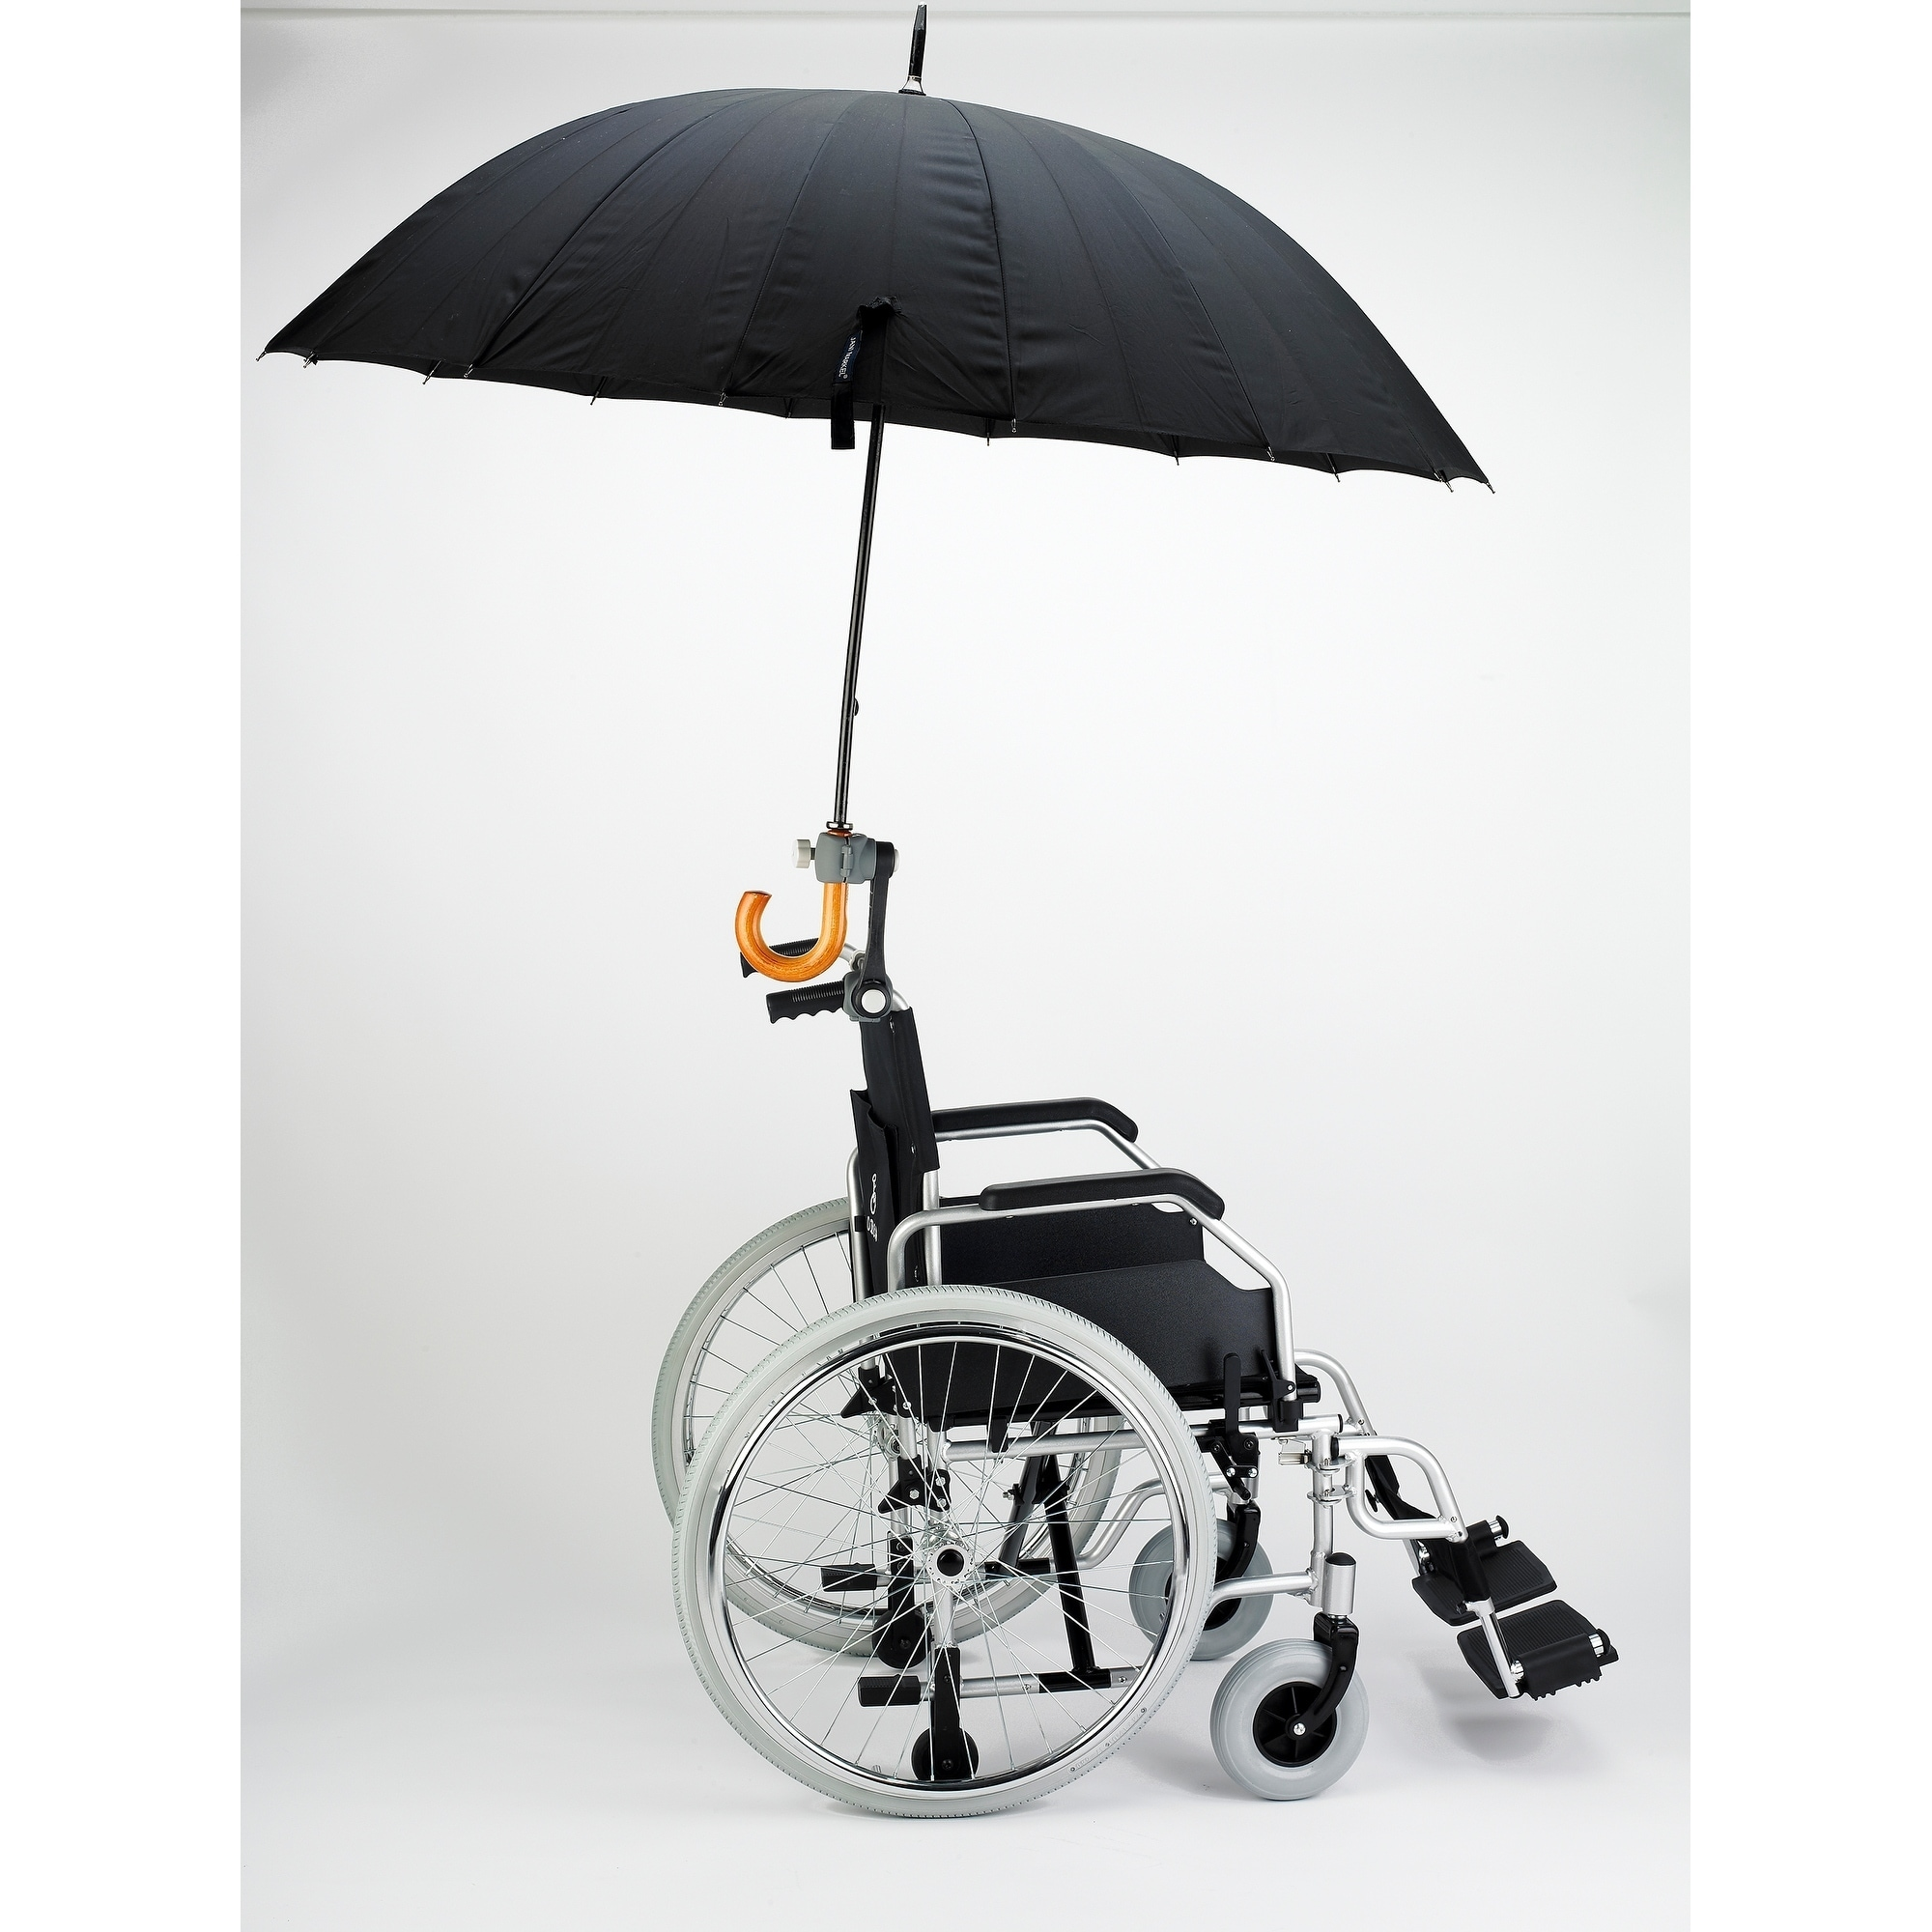 Wheelchair Golf Cart Holder Html on wheelchair stand up and play, courtesy cart, grocery cart,